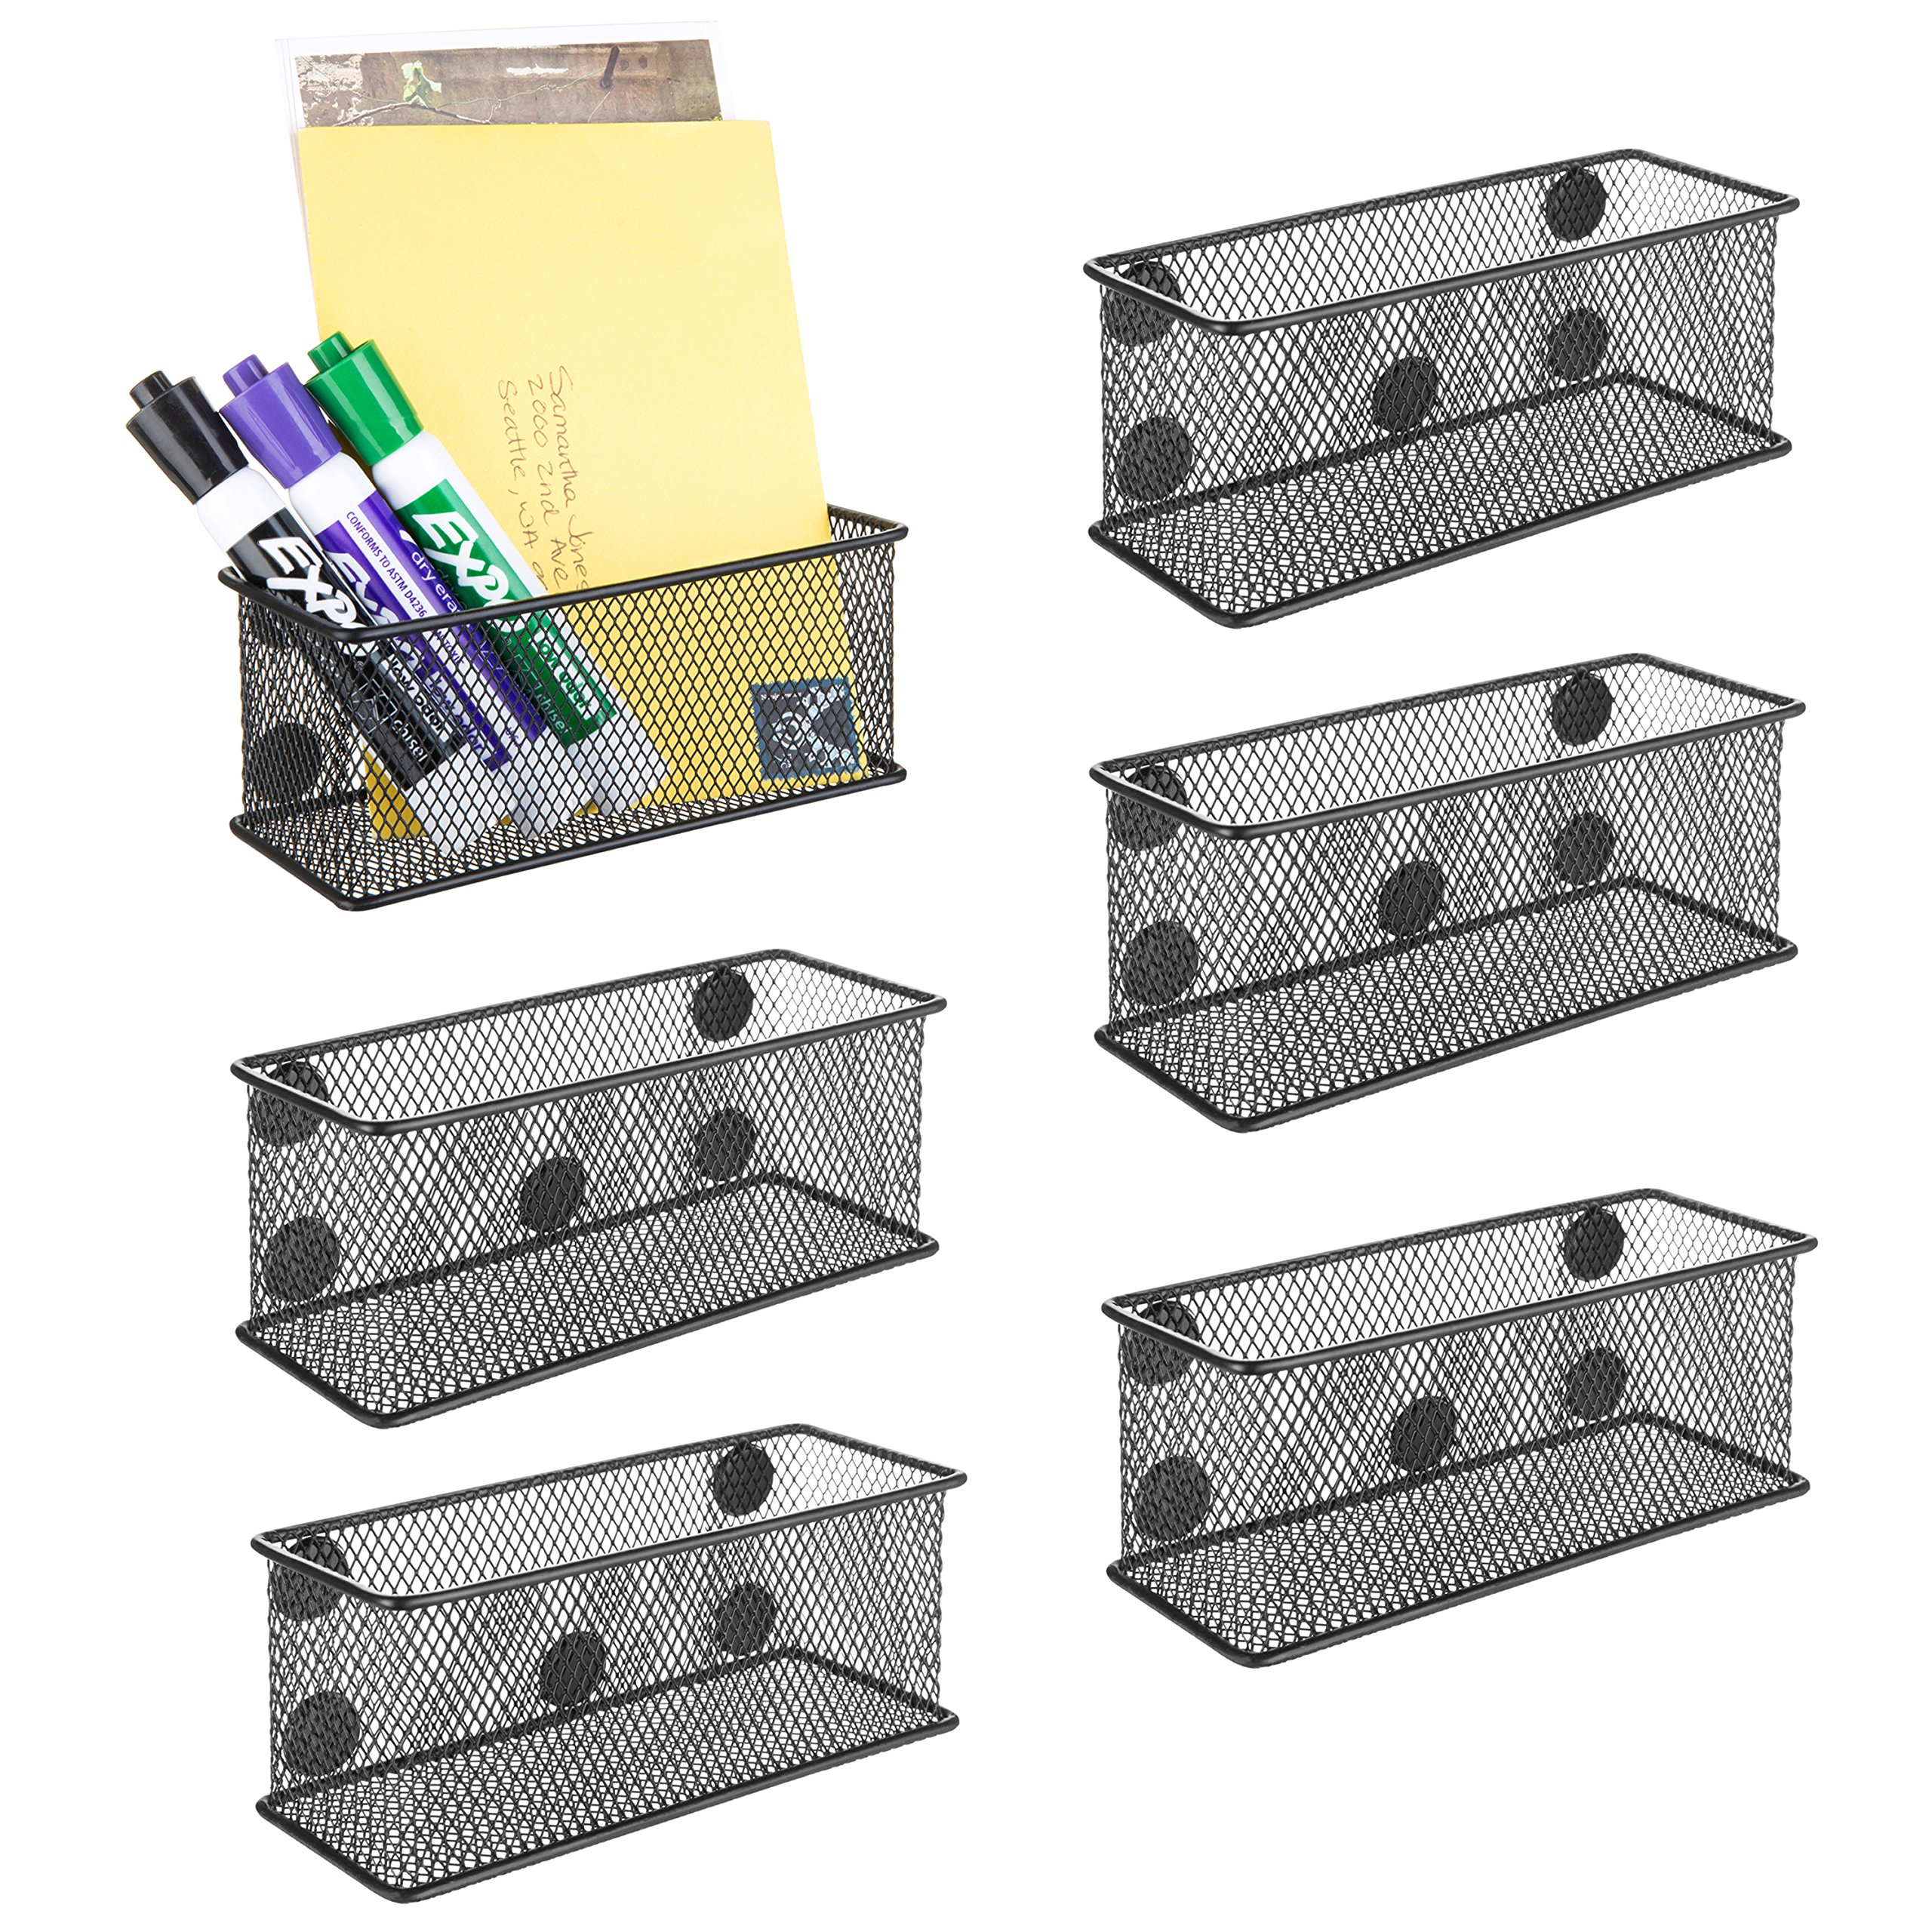 MyGift Wire Mesh Magnetic Storage Baskets, Office Supply Organizer, Set of 6, Black by MyGift (Image #1)